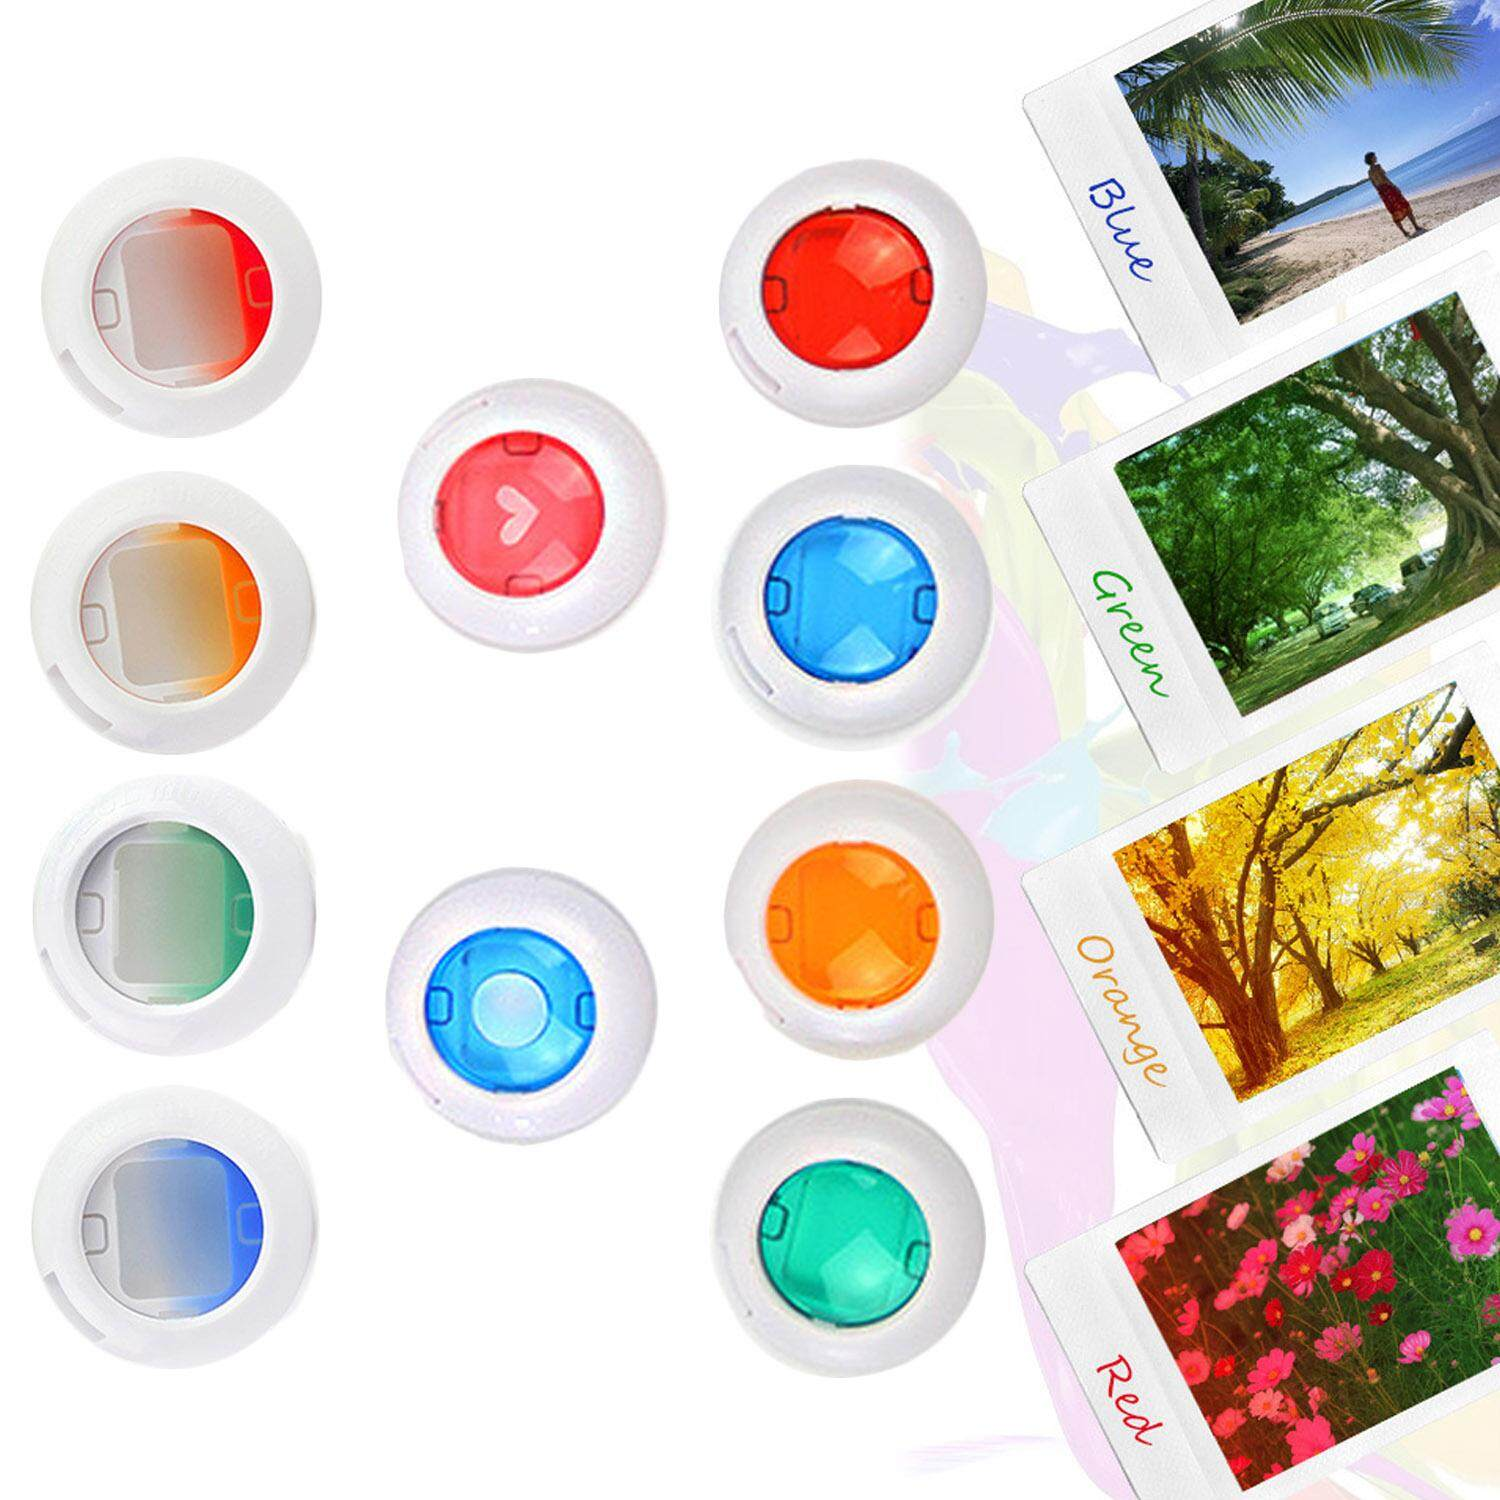 10 Pcs Assorted Colors Close Up Color Lens Filter Set For Fujifilm Instax Mini 8 8+ 9 7s Kt Instant Film Camera - Intl By Stoneky.